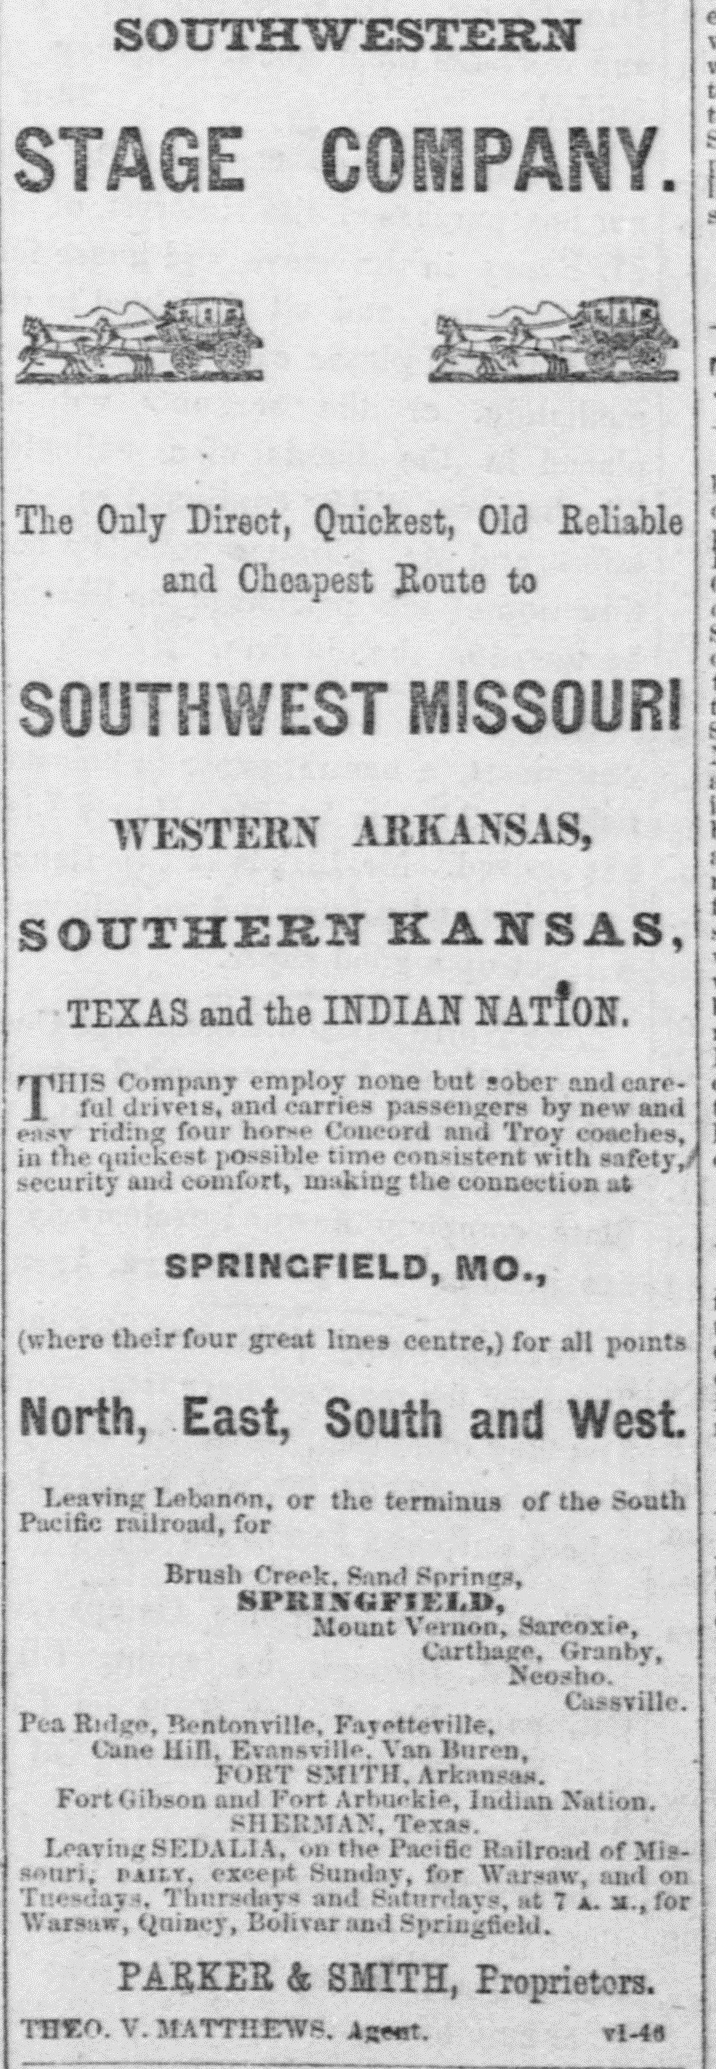 BARRY COUNTY HISTORY: NEWSPAPER CLIPPINGS